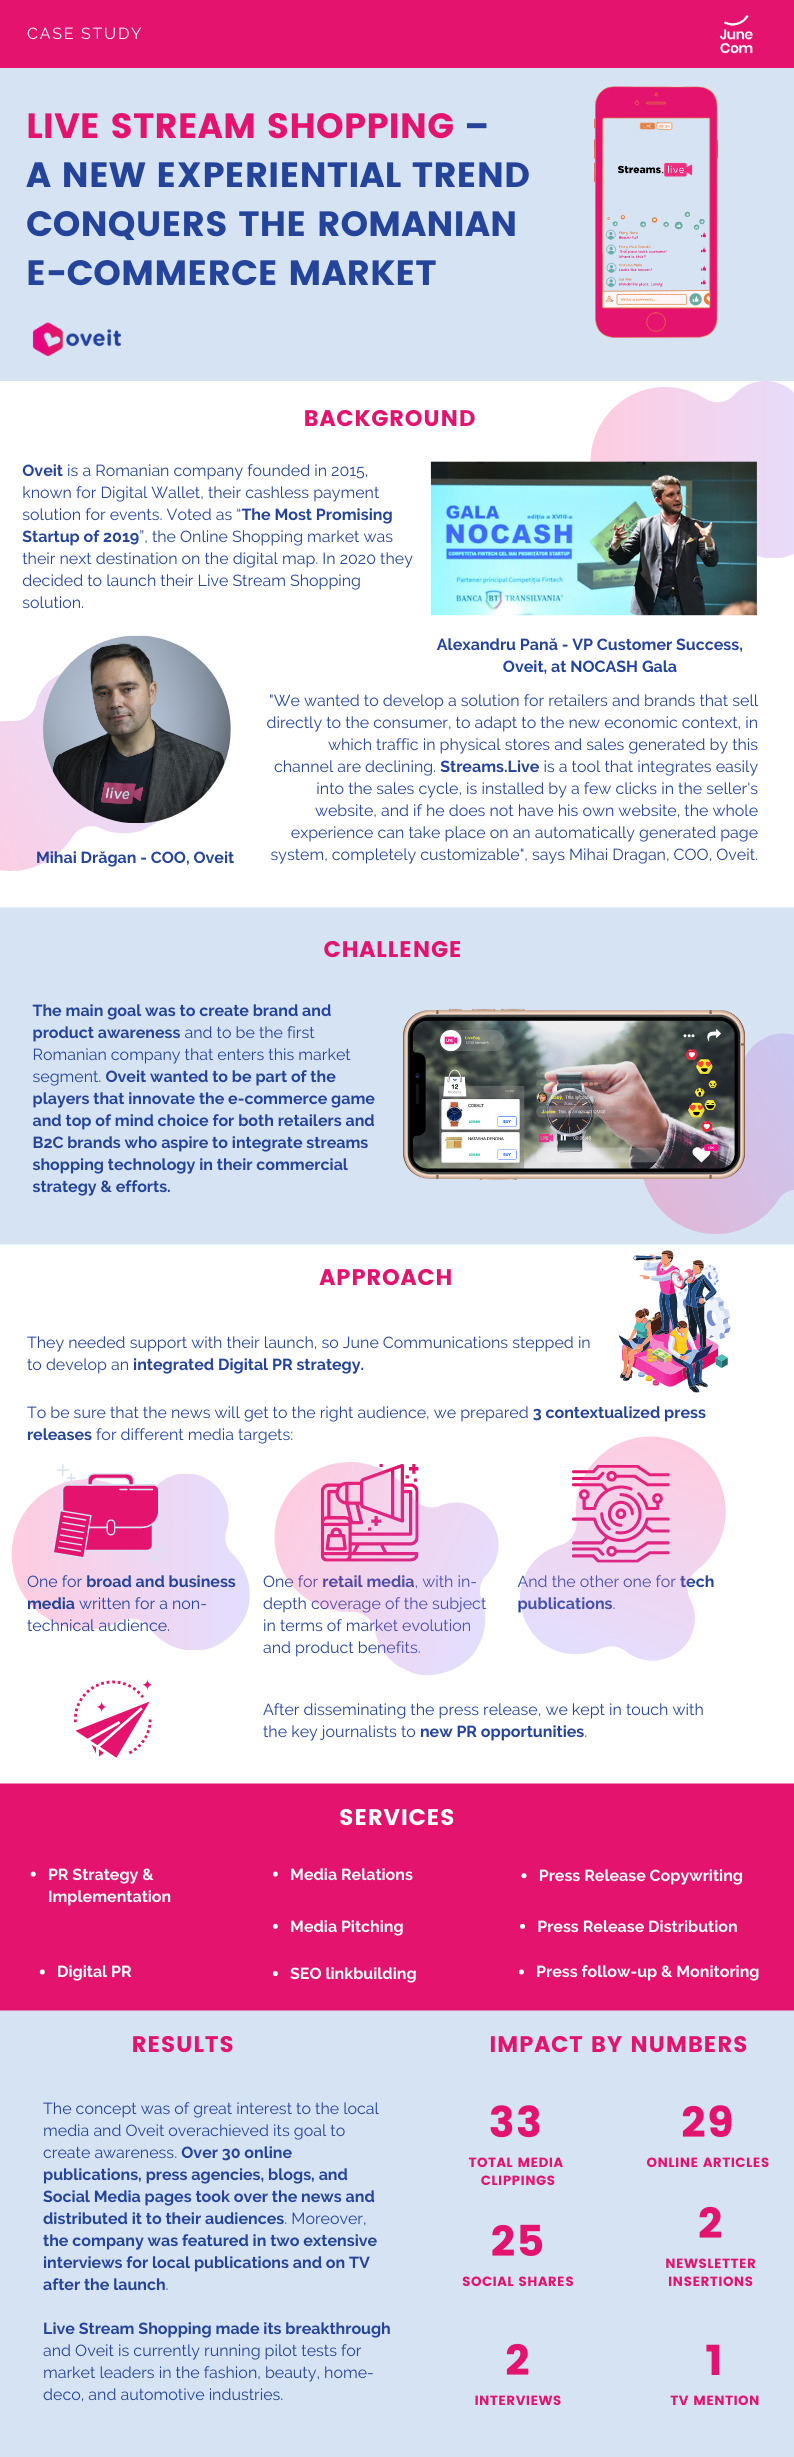 infographic about the PR launch for Oveit, made by June Communications